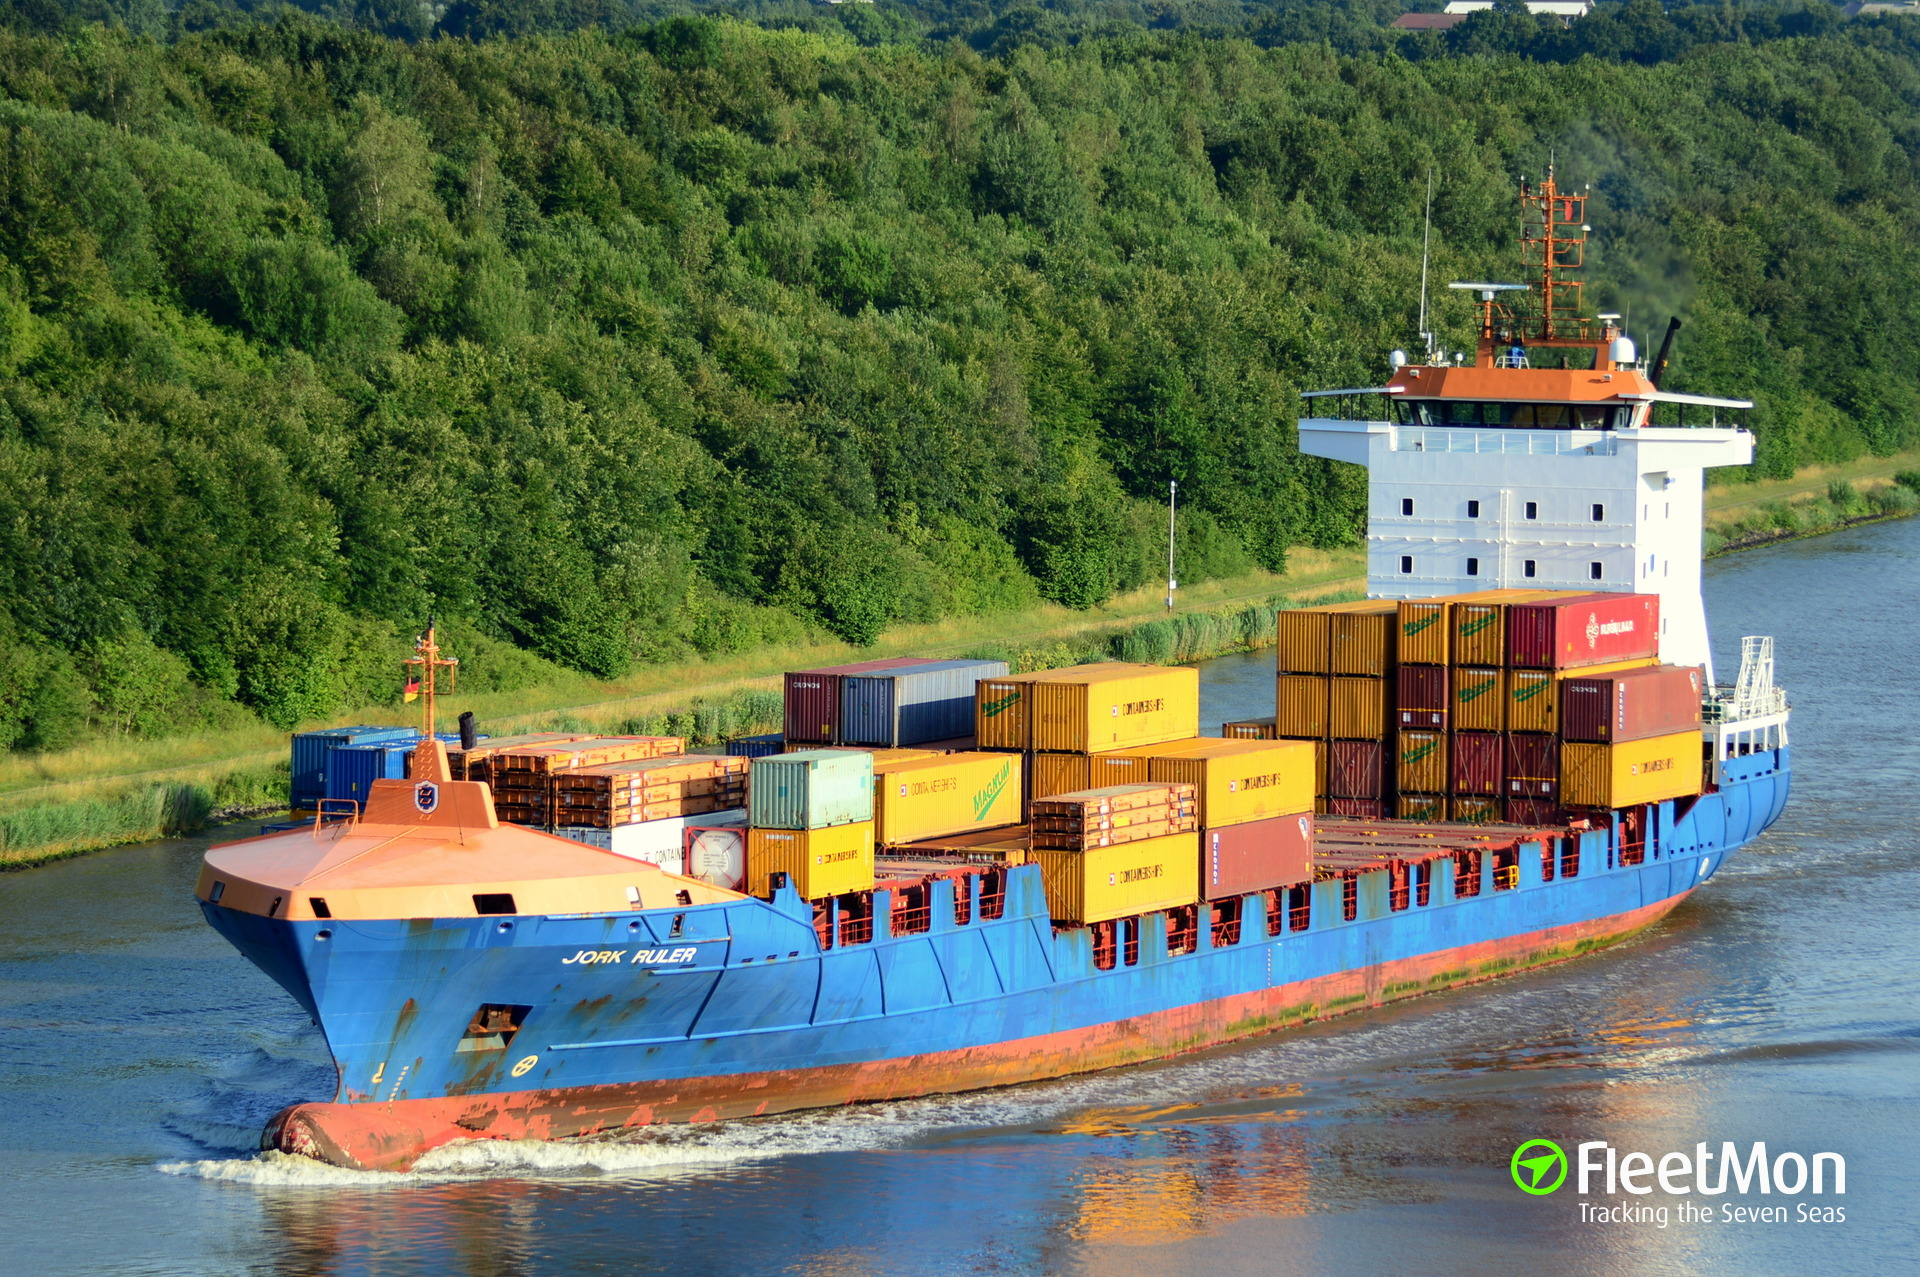 Boxship Jork Ruler disabled in Kiel Canal